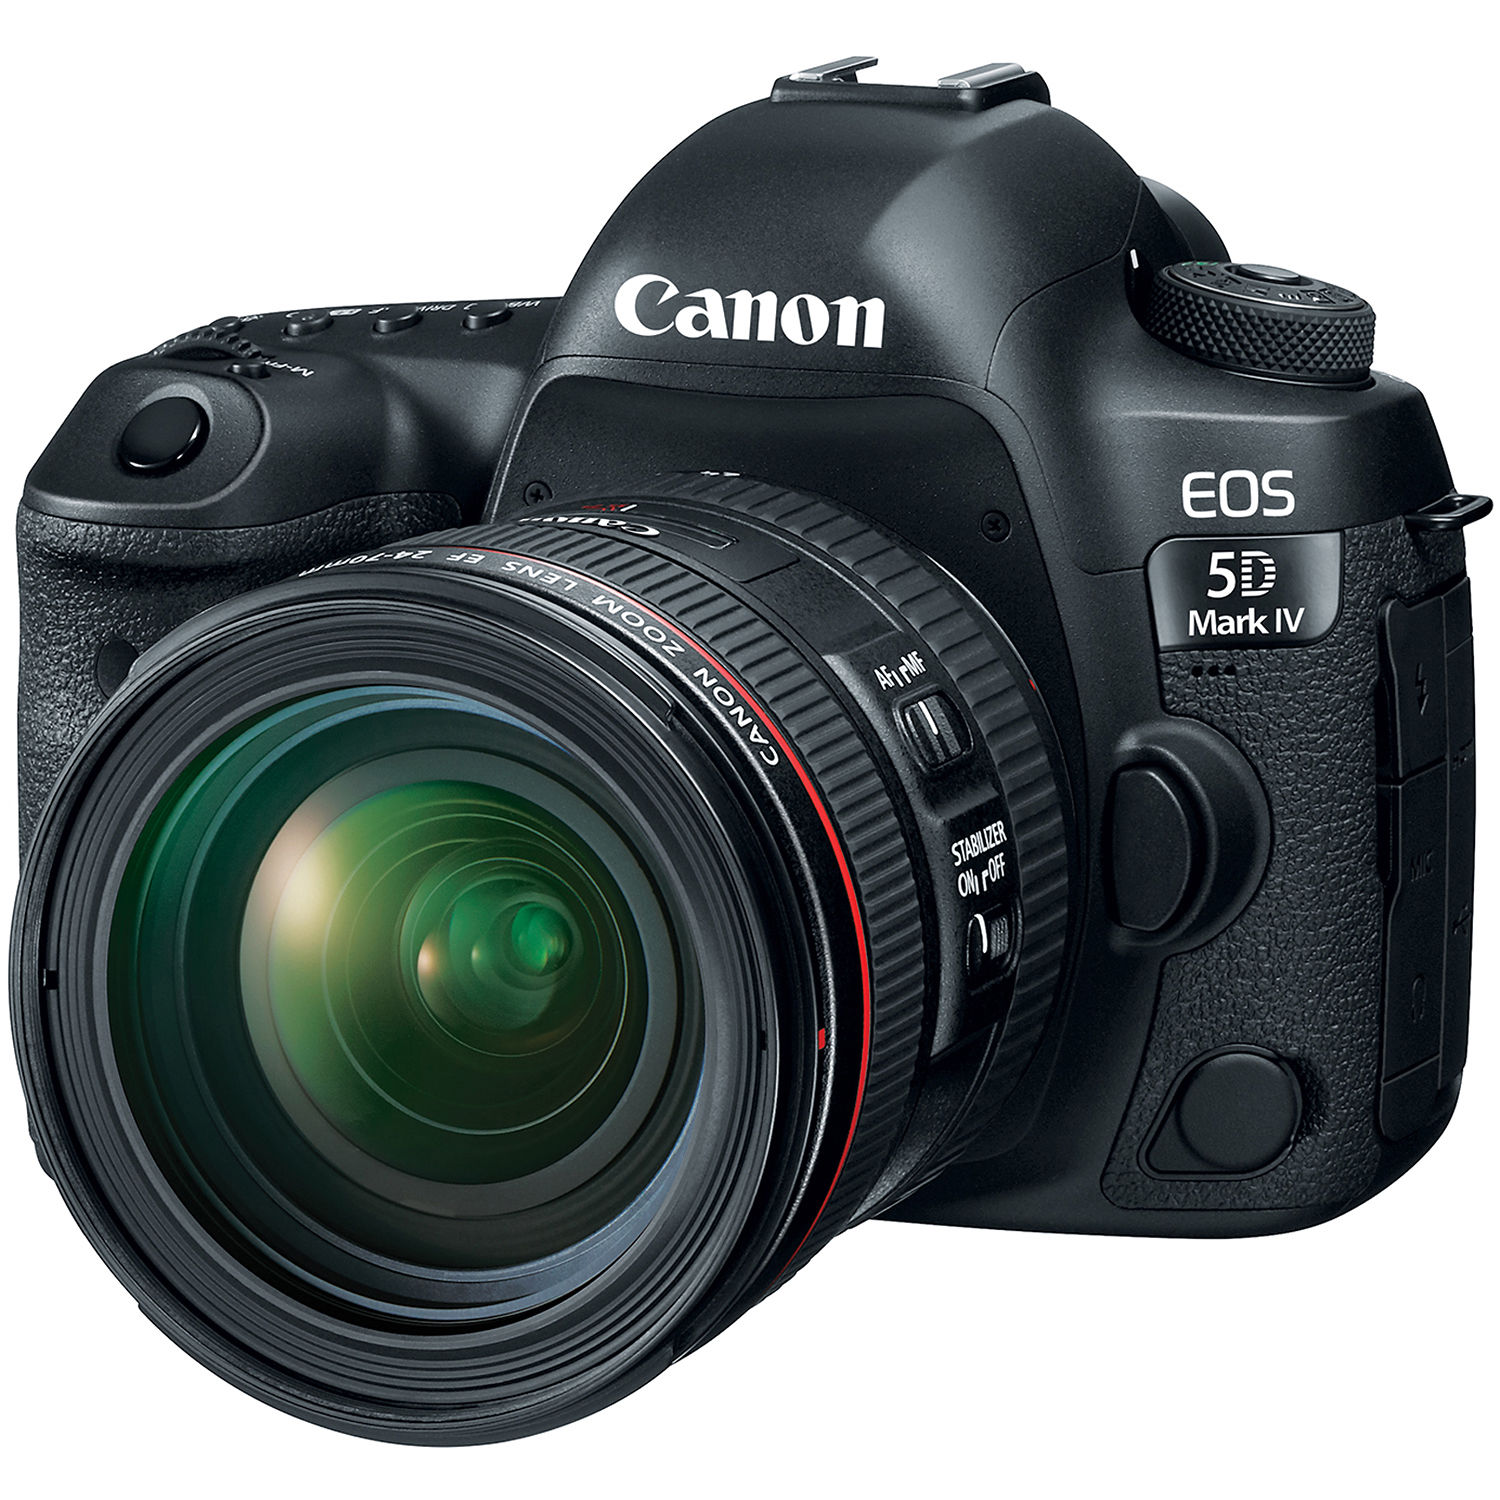 Canon EOS 5D Mark IV DSLR Camera with 24-70mm f/4L Lens 1483C018